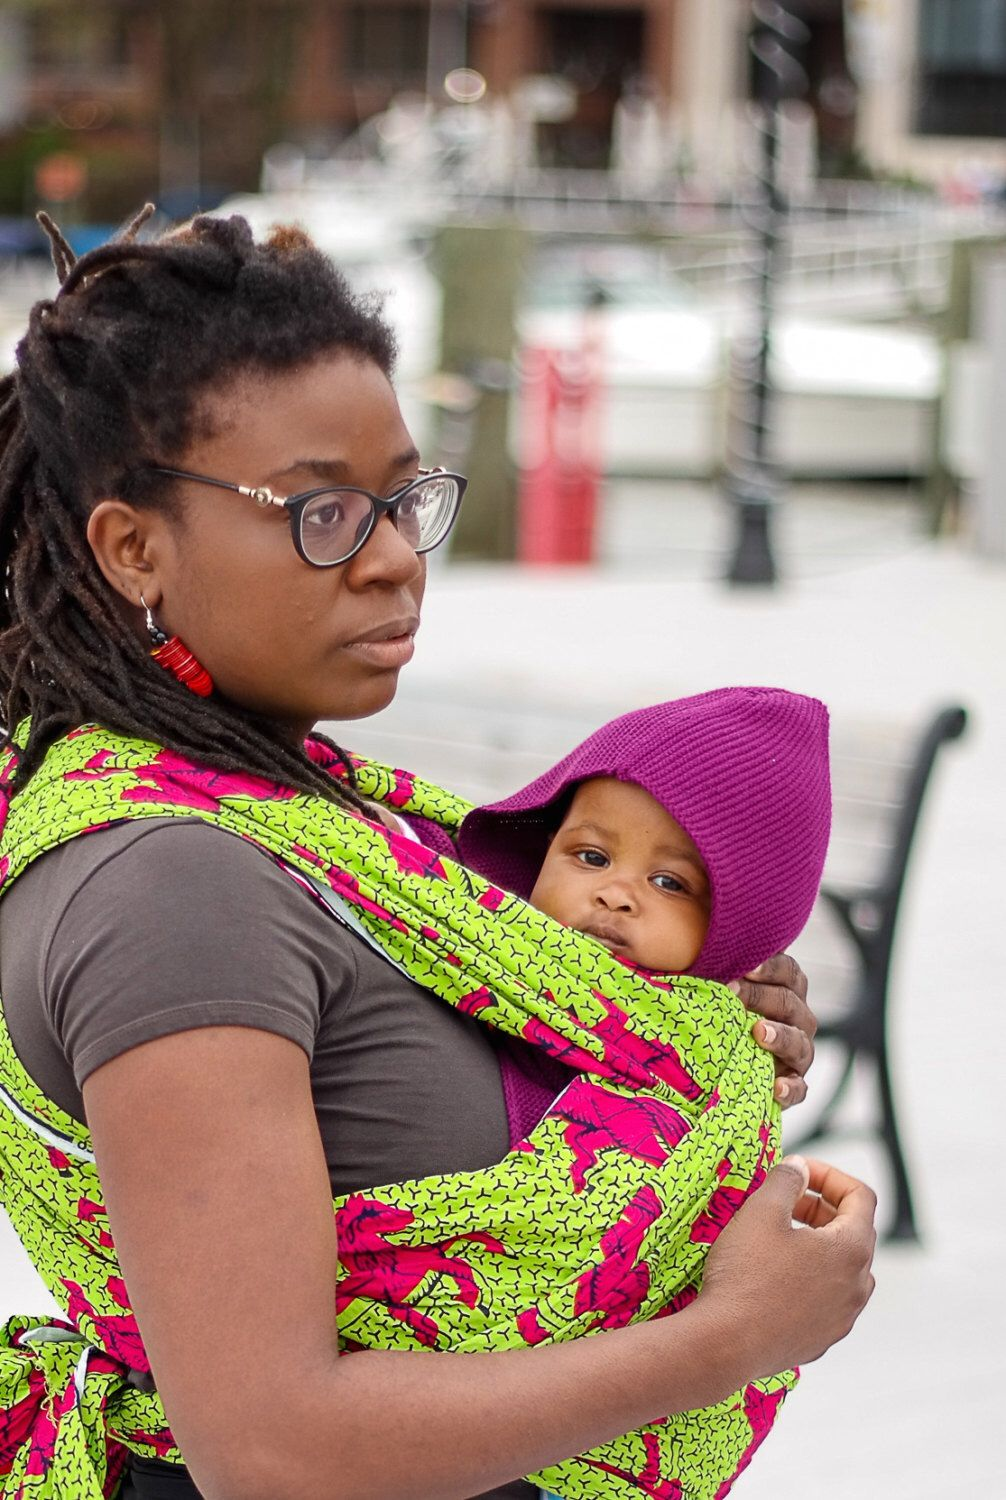 bdb88749f6f Baby wrap   sling   carrier - Choose from Unique Beautiful Ethnic African  Prints by AdorablyAfrican